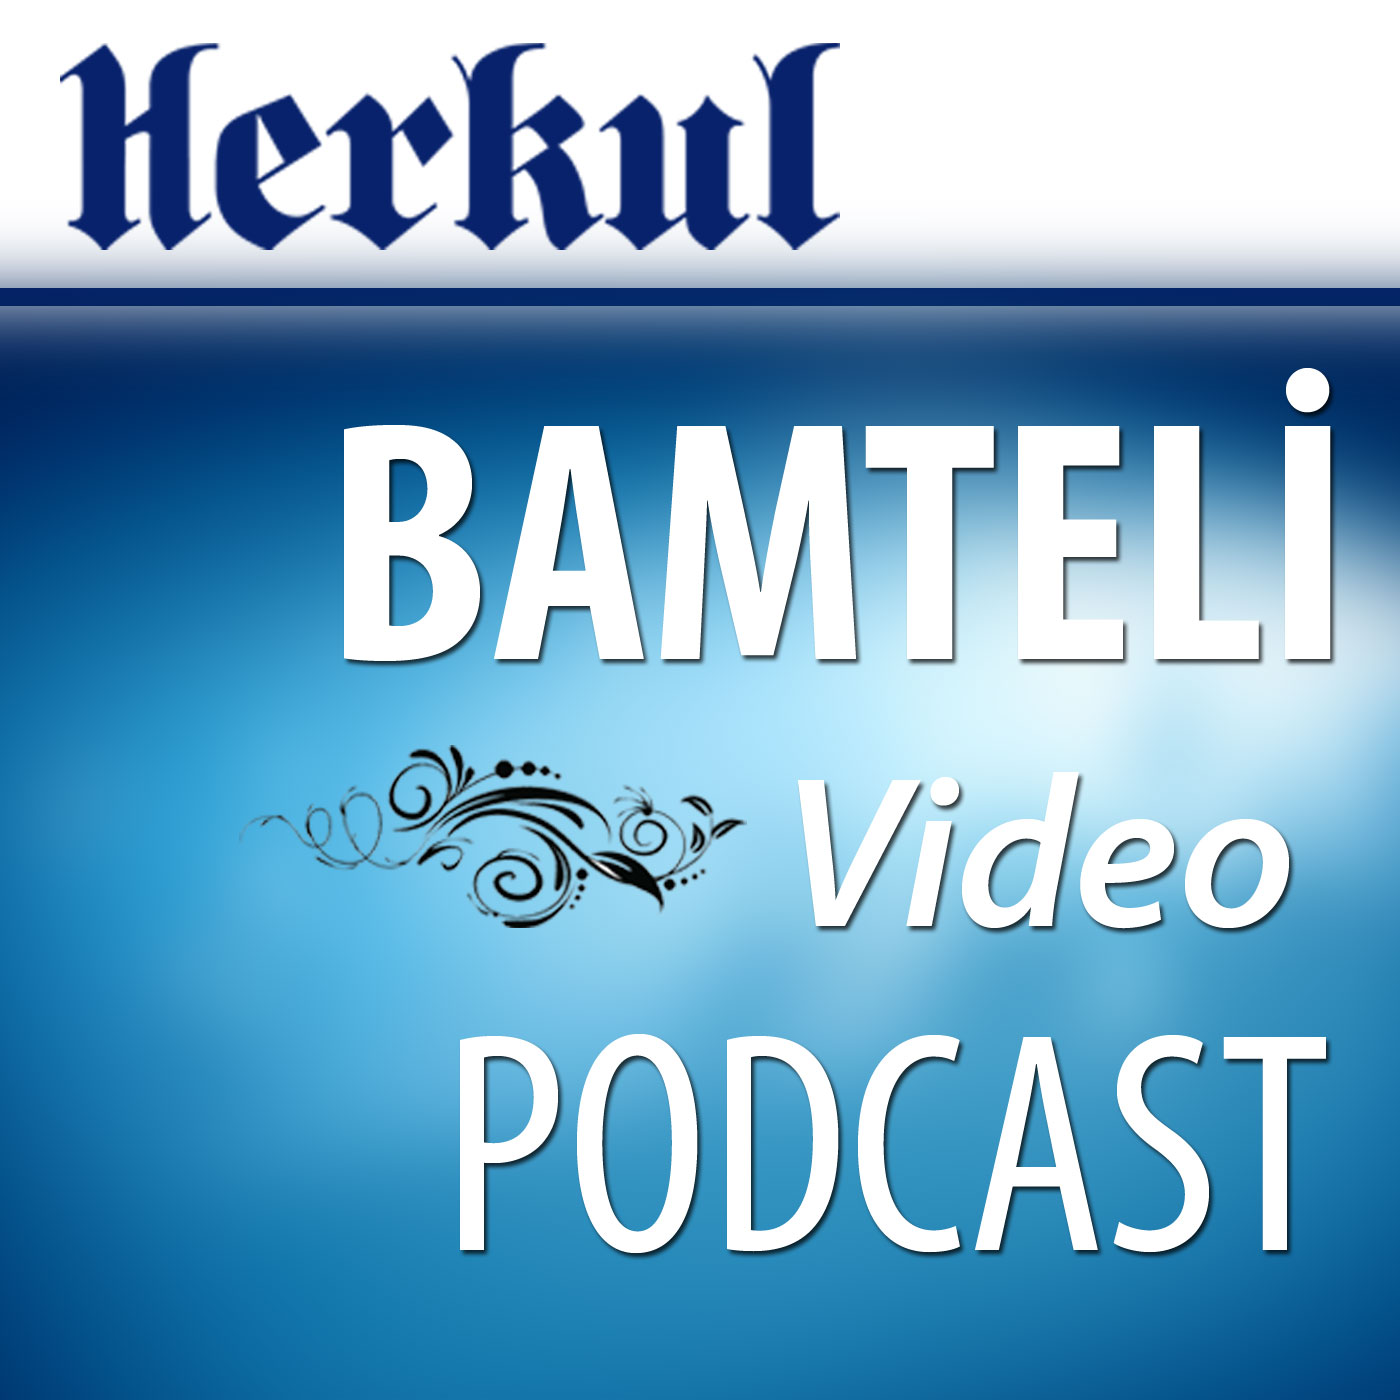 Herkul.org :. Bamteli Video Podcast